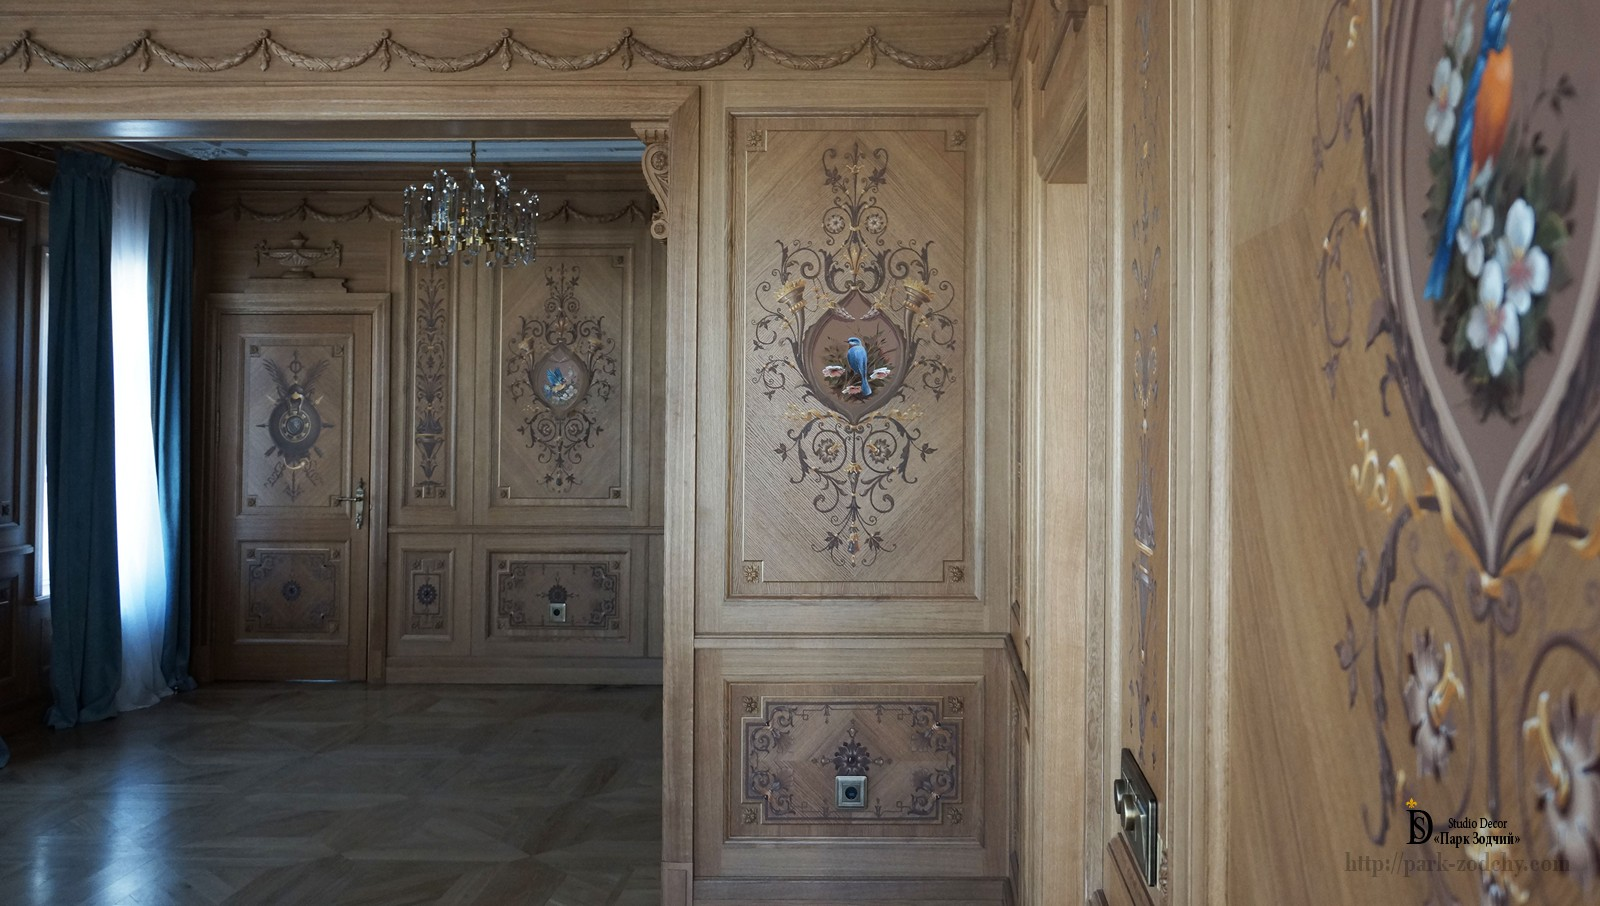 The interior of the male Cabinet with the panels boiserie